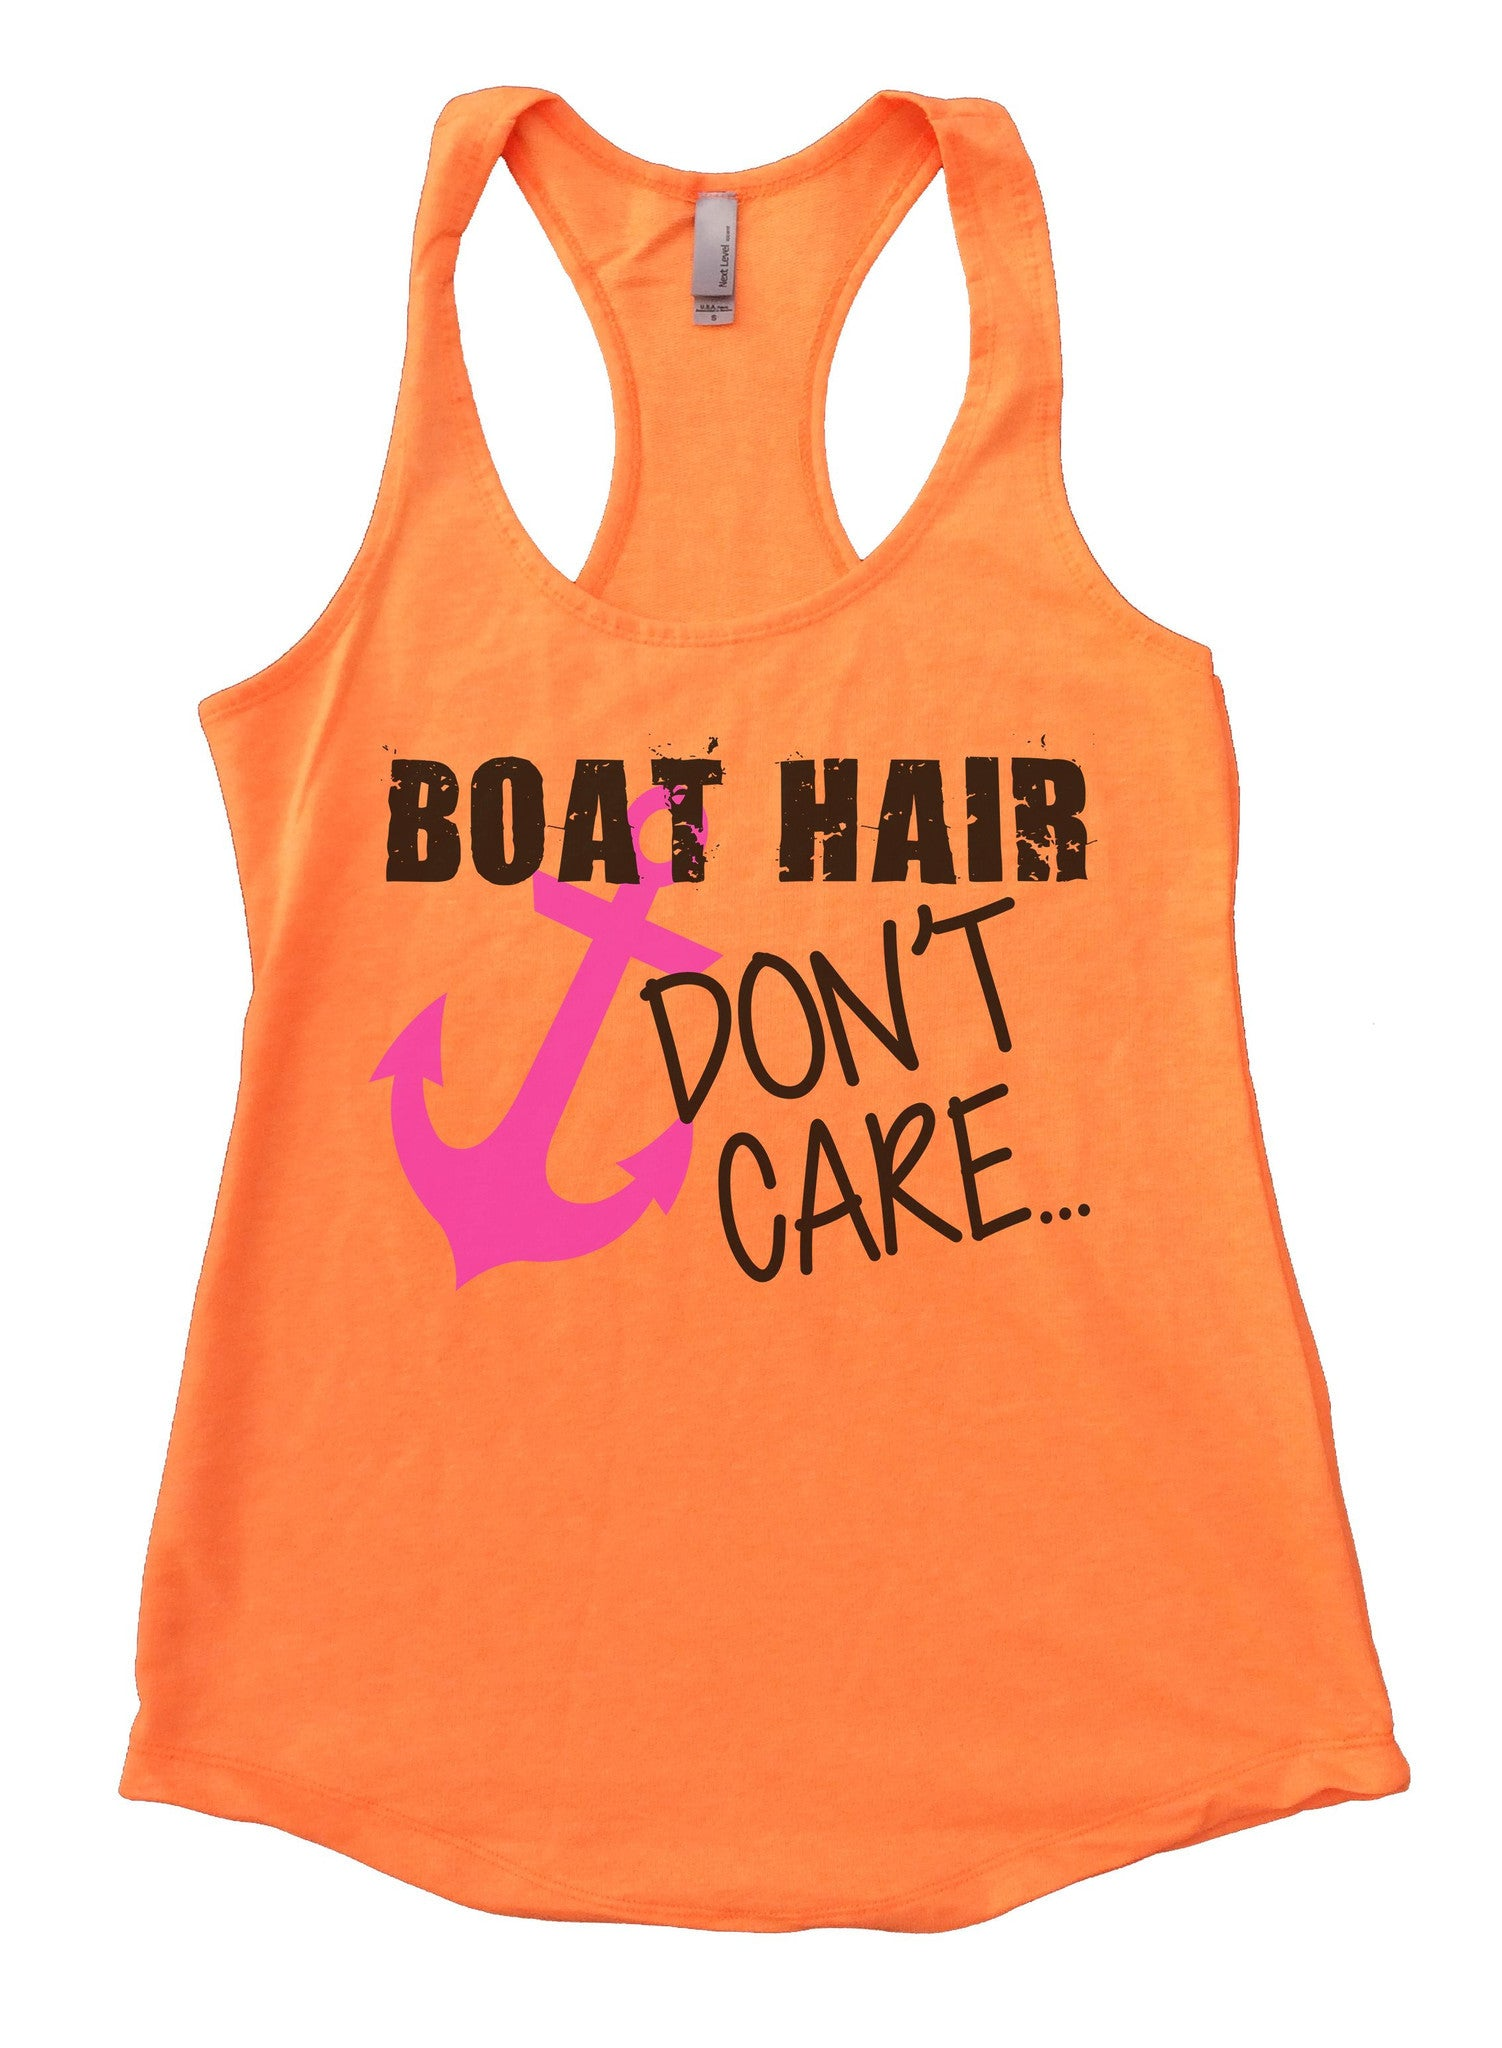 Boat Hair Don't Care Womens Workout Tank Top F691 - Funny Shirts Tank Tops Burnouts and Triblends  - 5